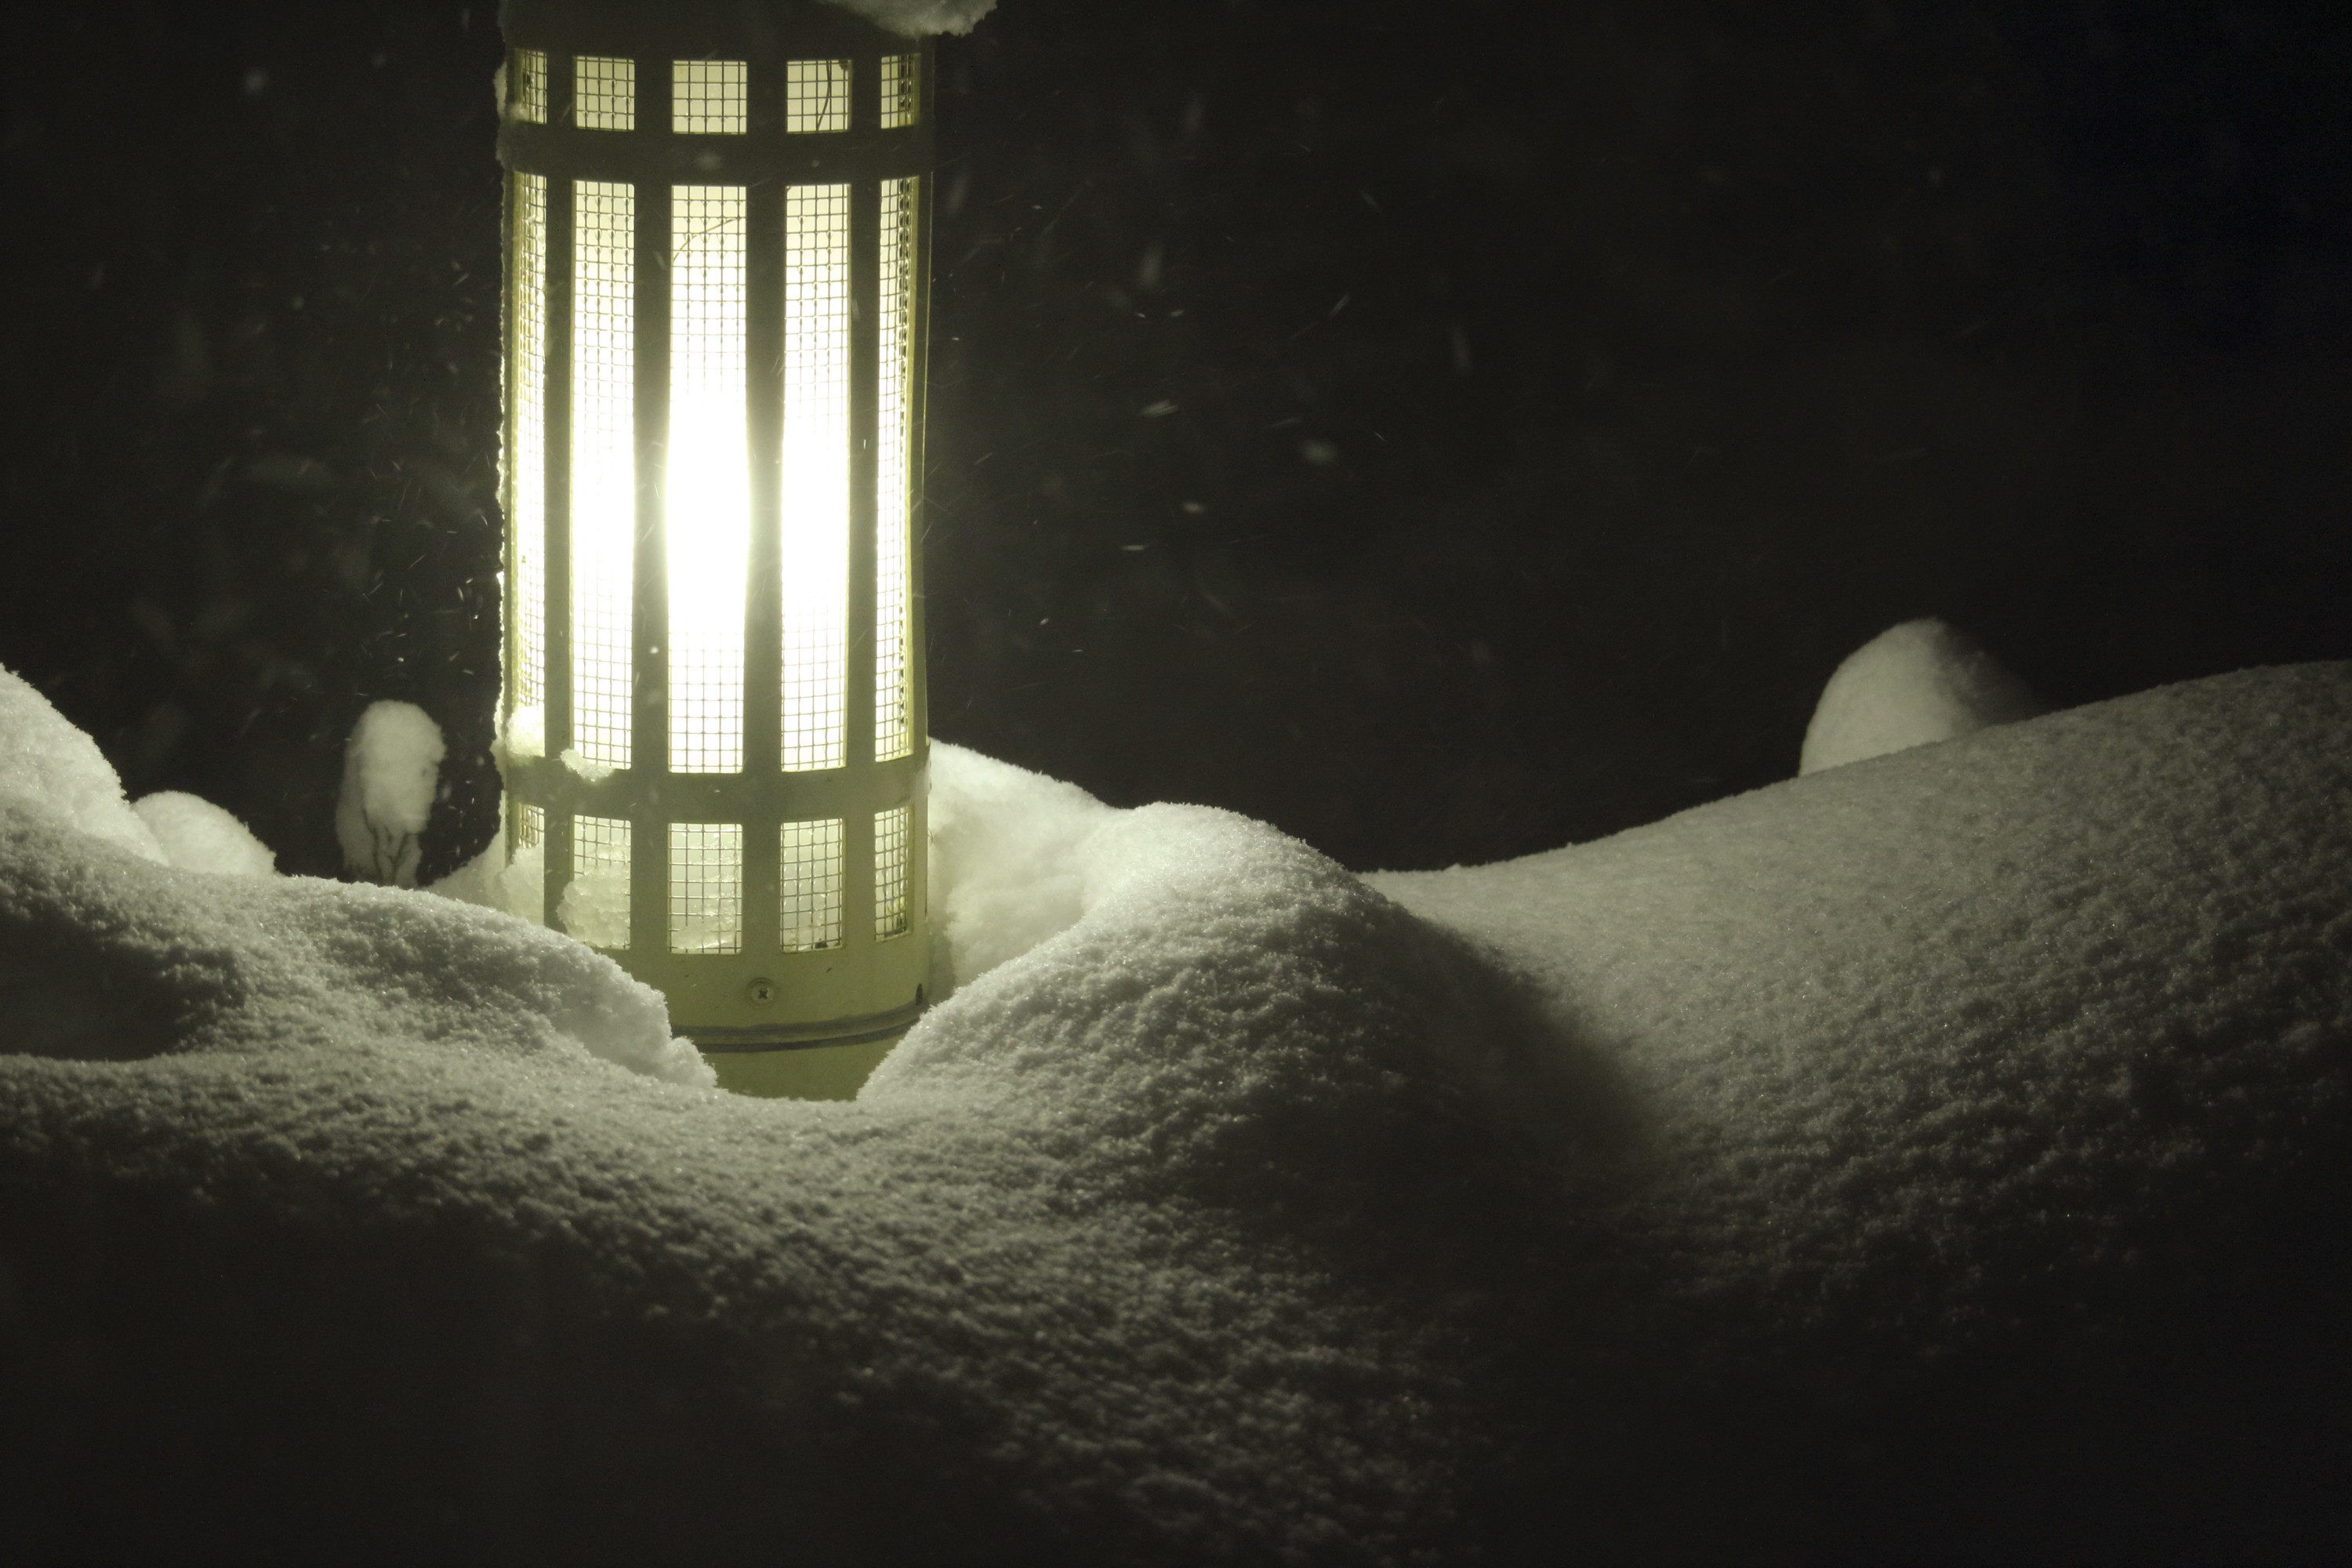 lighting-in-the-snowstorm-003